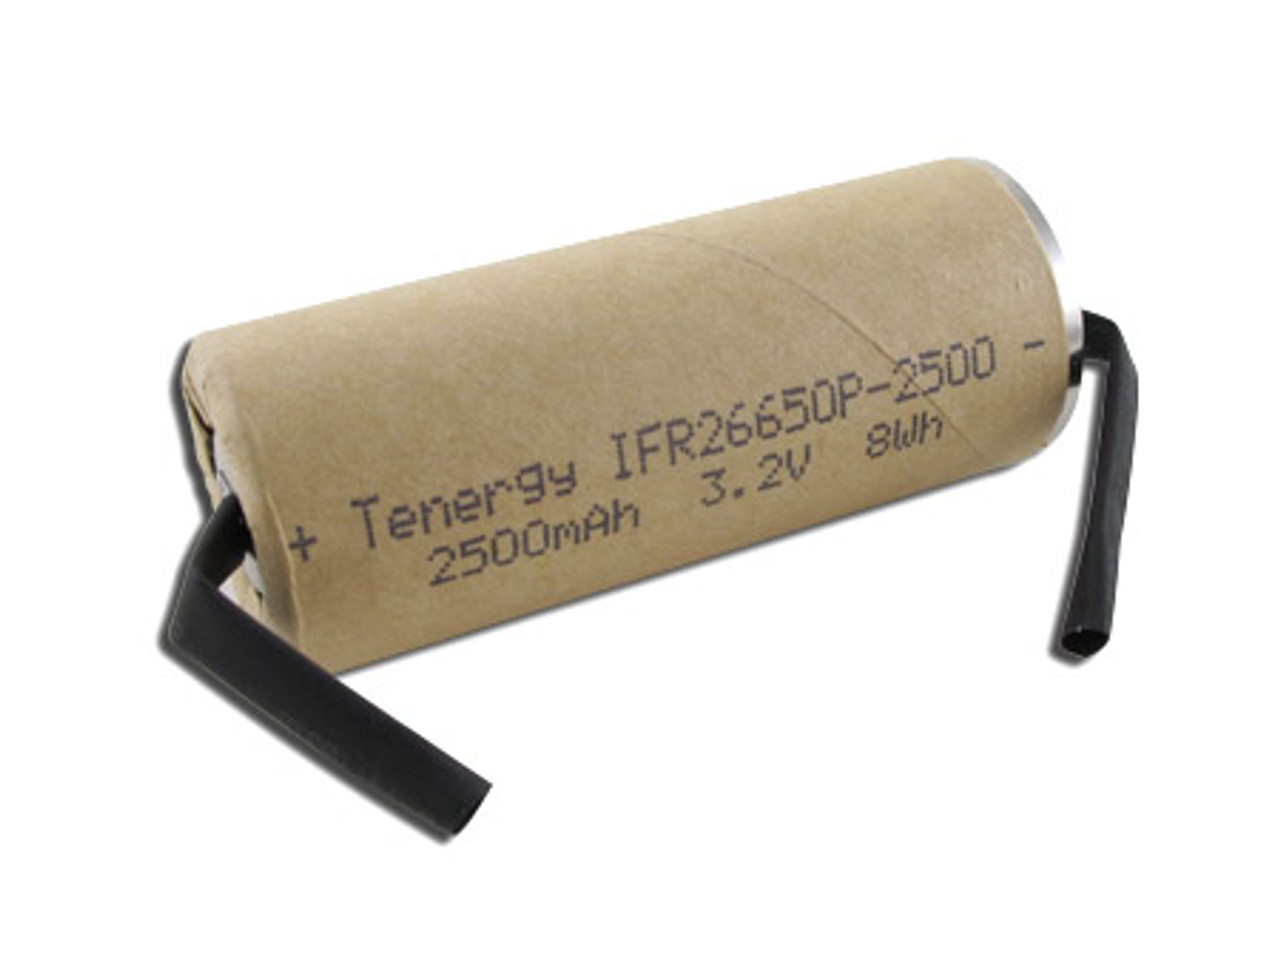 Tenergy 3.2V 2500mAh 8Wh LiFePO4 (IFR26650P) Power Cell Rechargeable Battery (UL Listed)